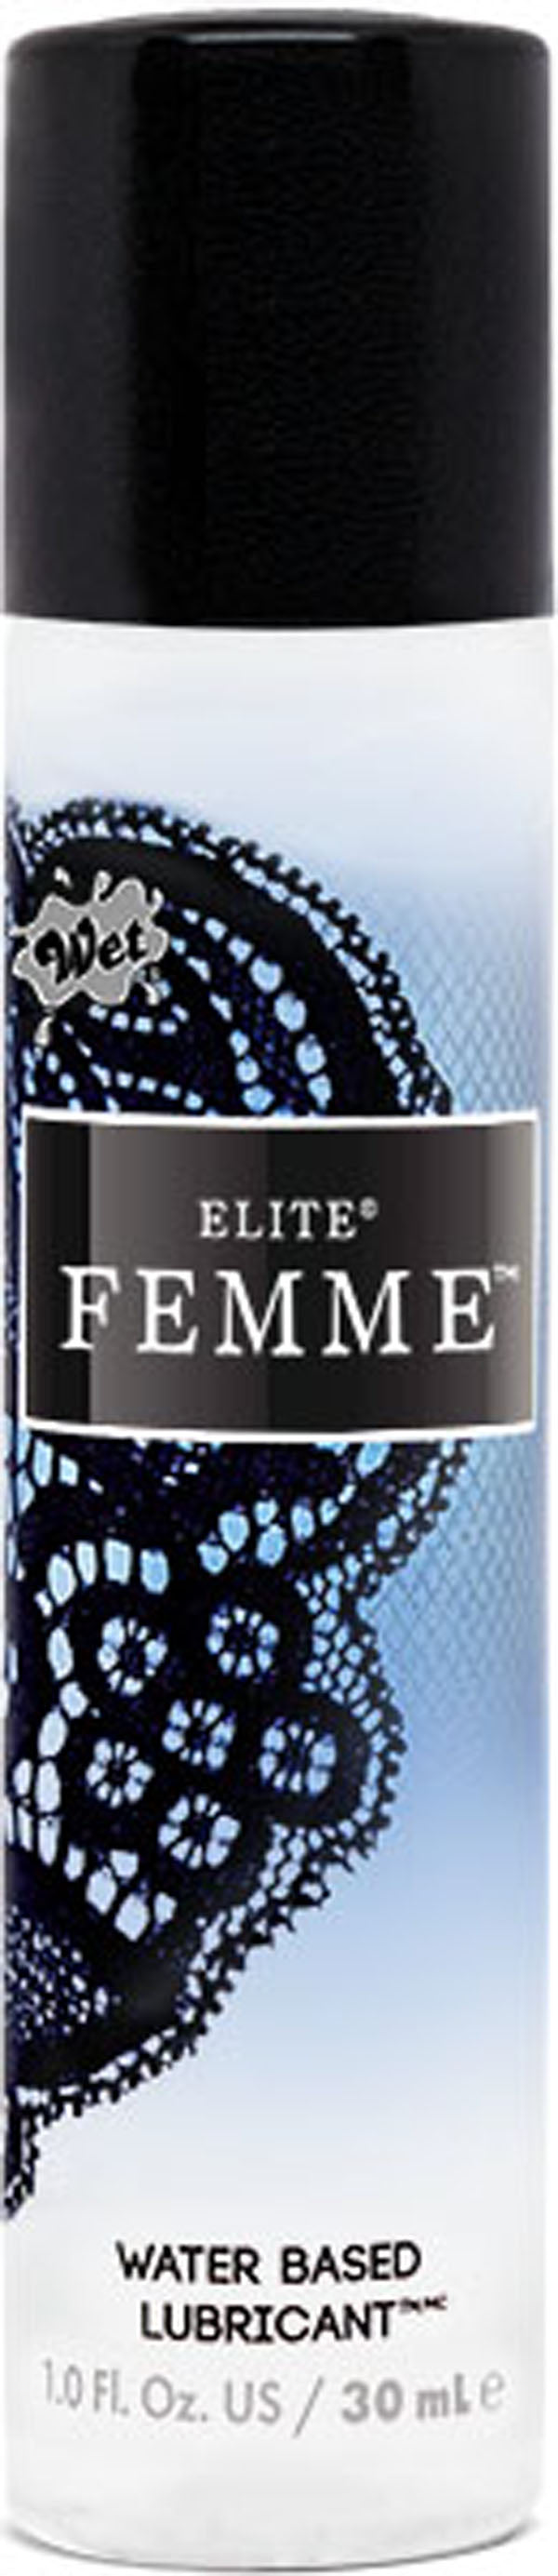 Wet Elite Femme Water Based 1 Fl. Oz. - My sheree and More